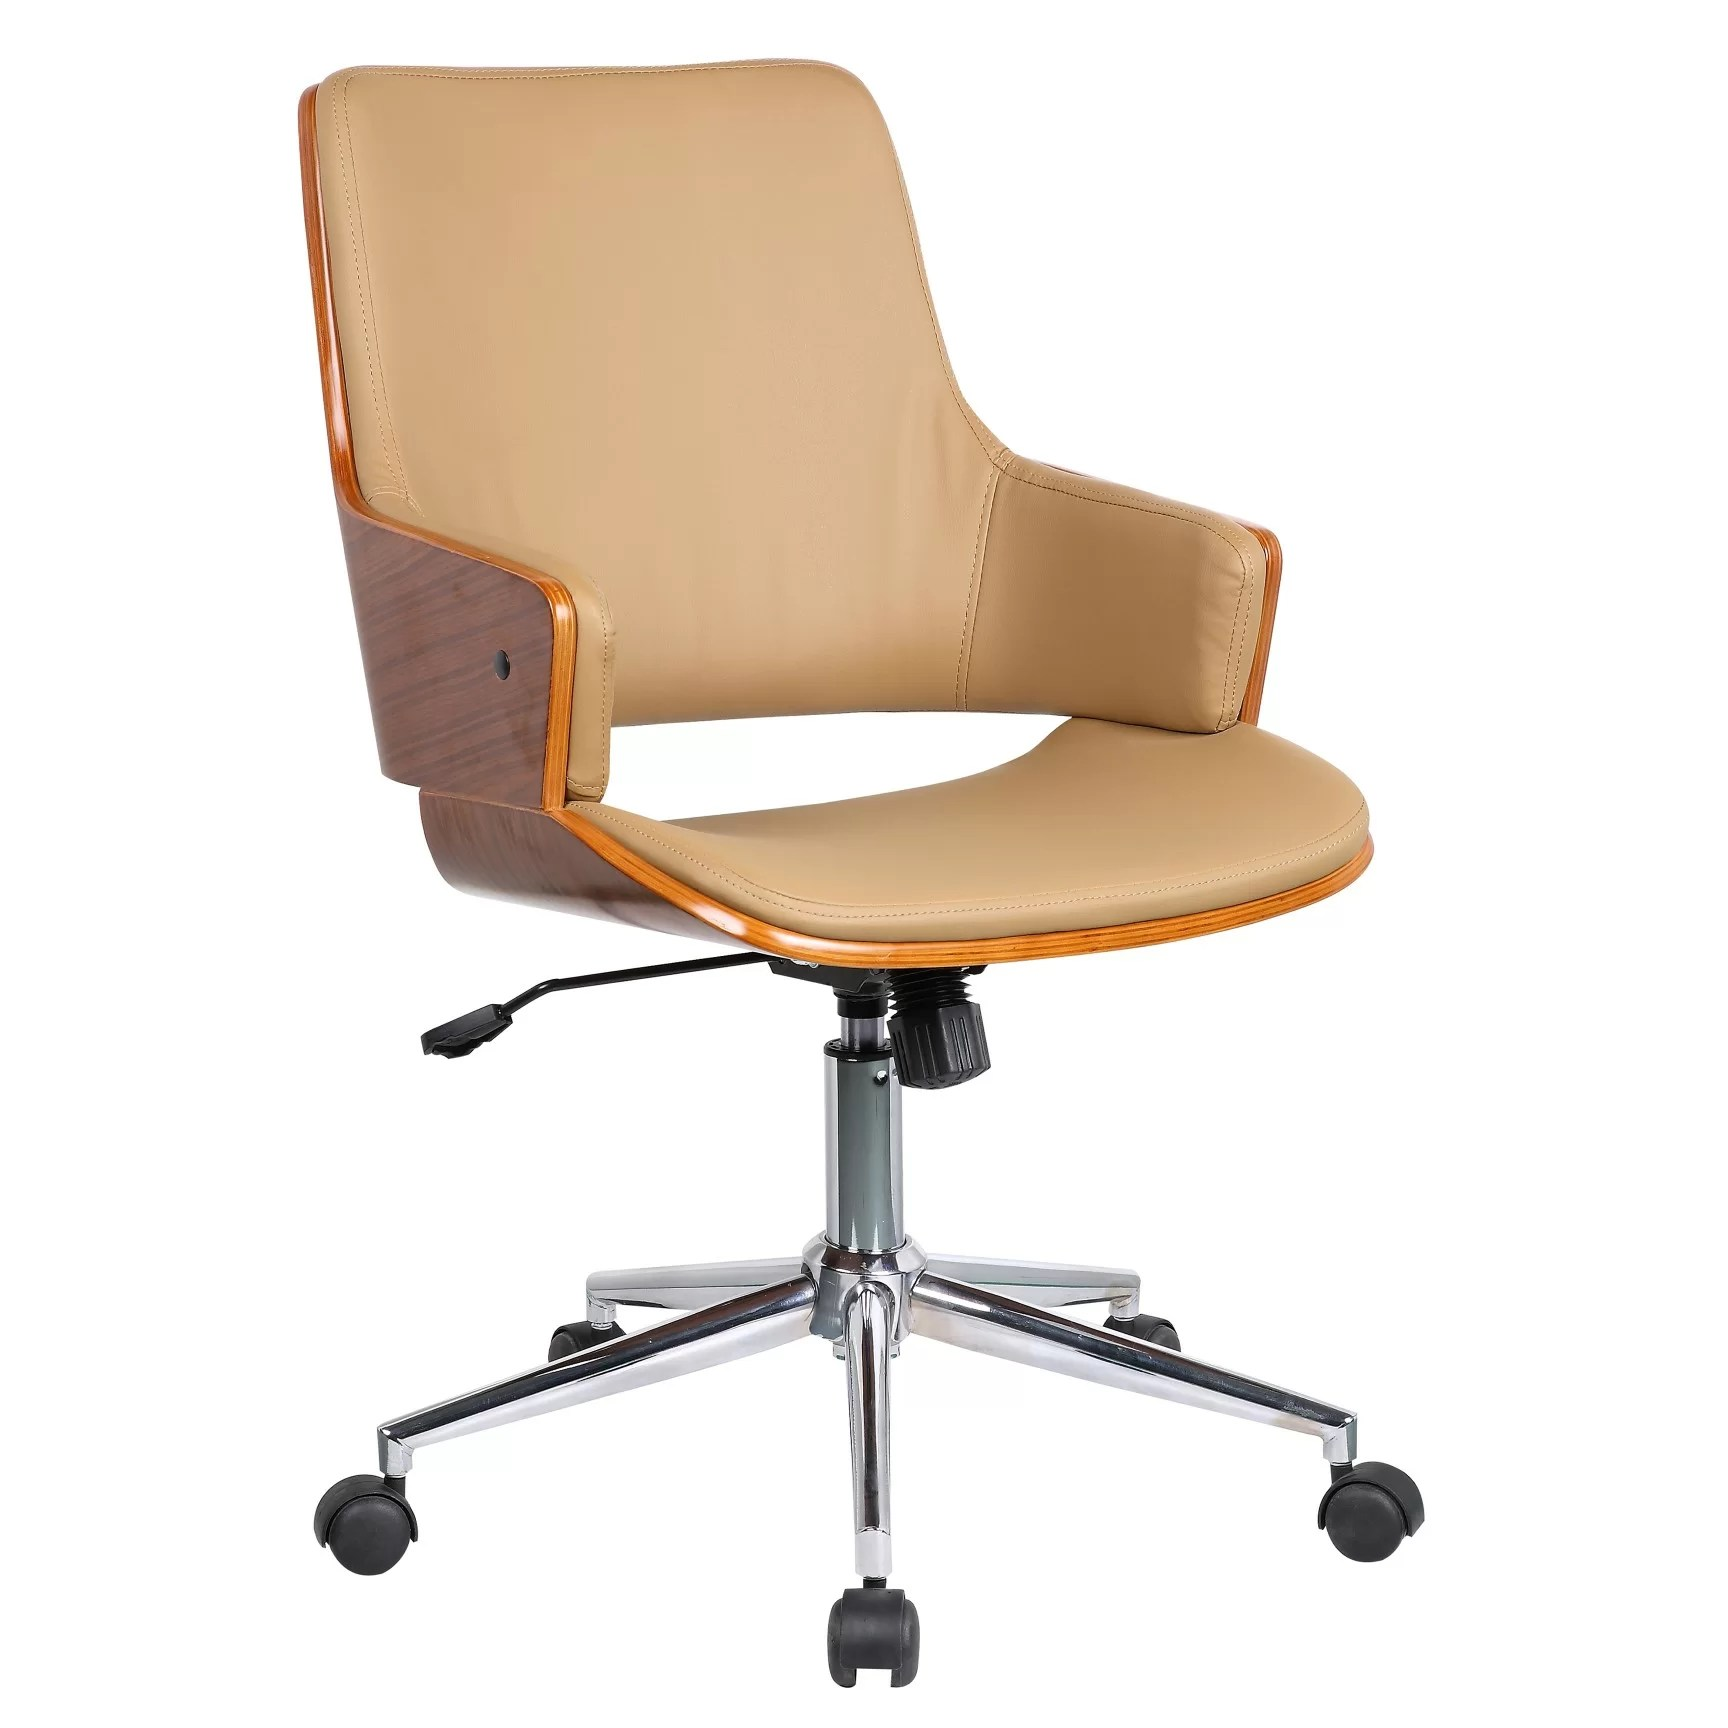 Office Chair With Arms Porthos Home Solene High Back Leather Office Chair With